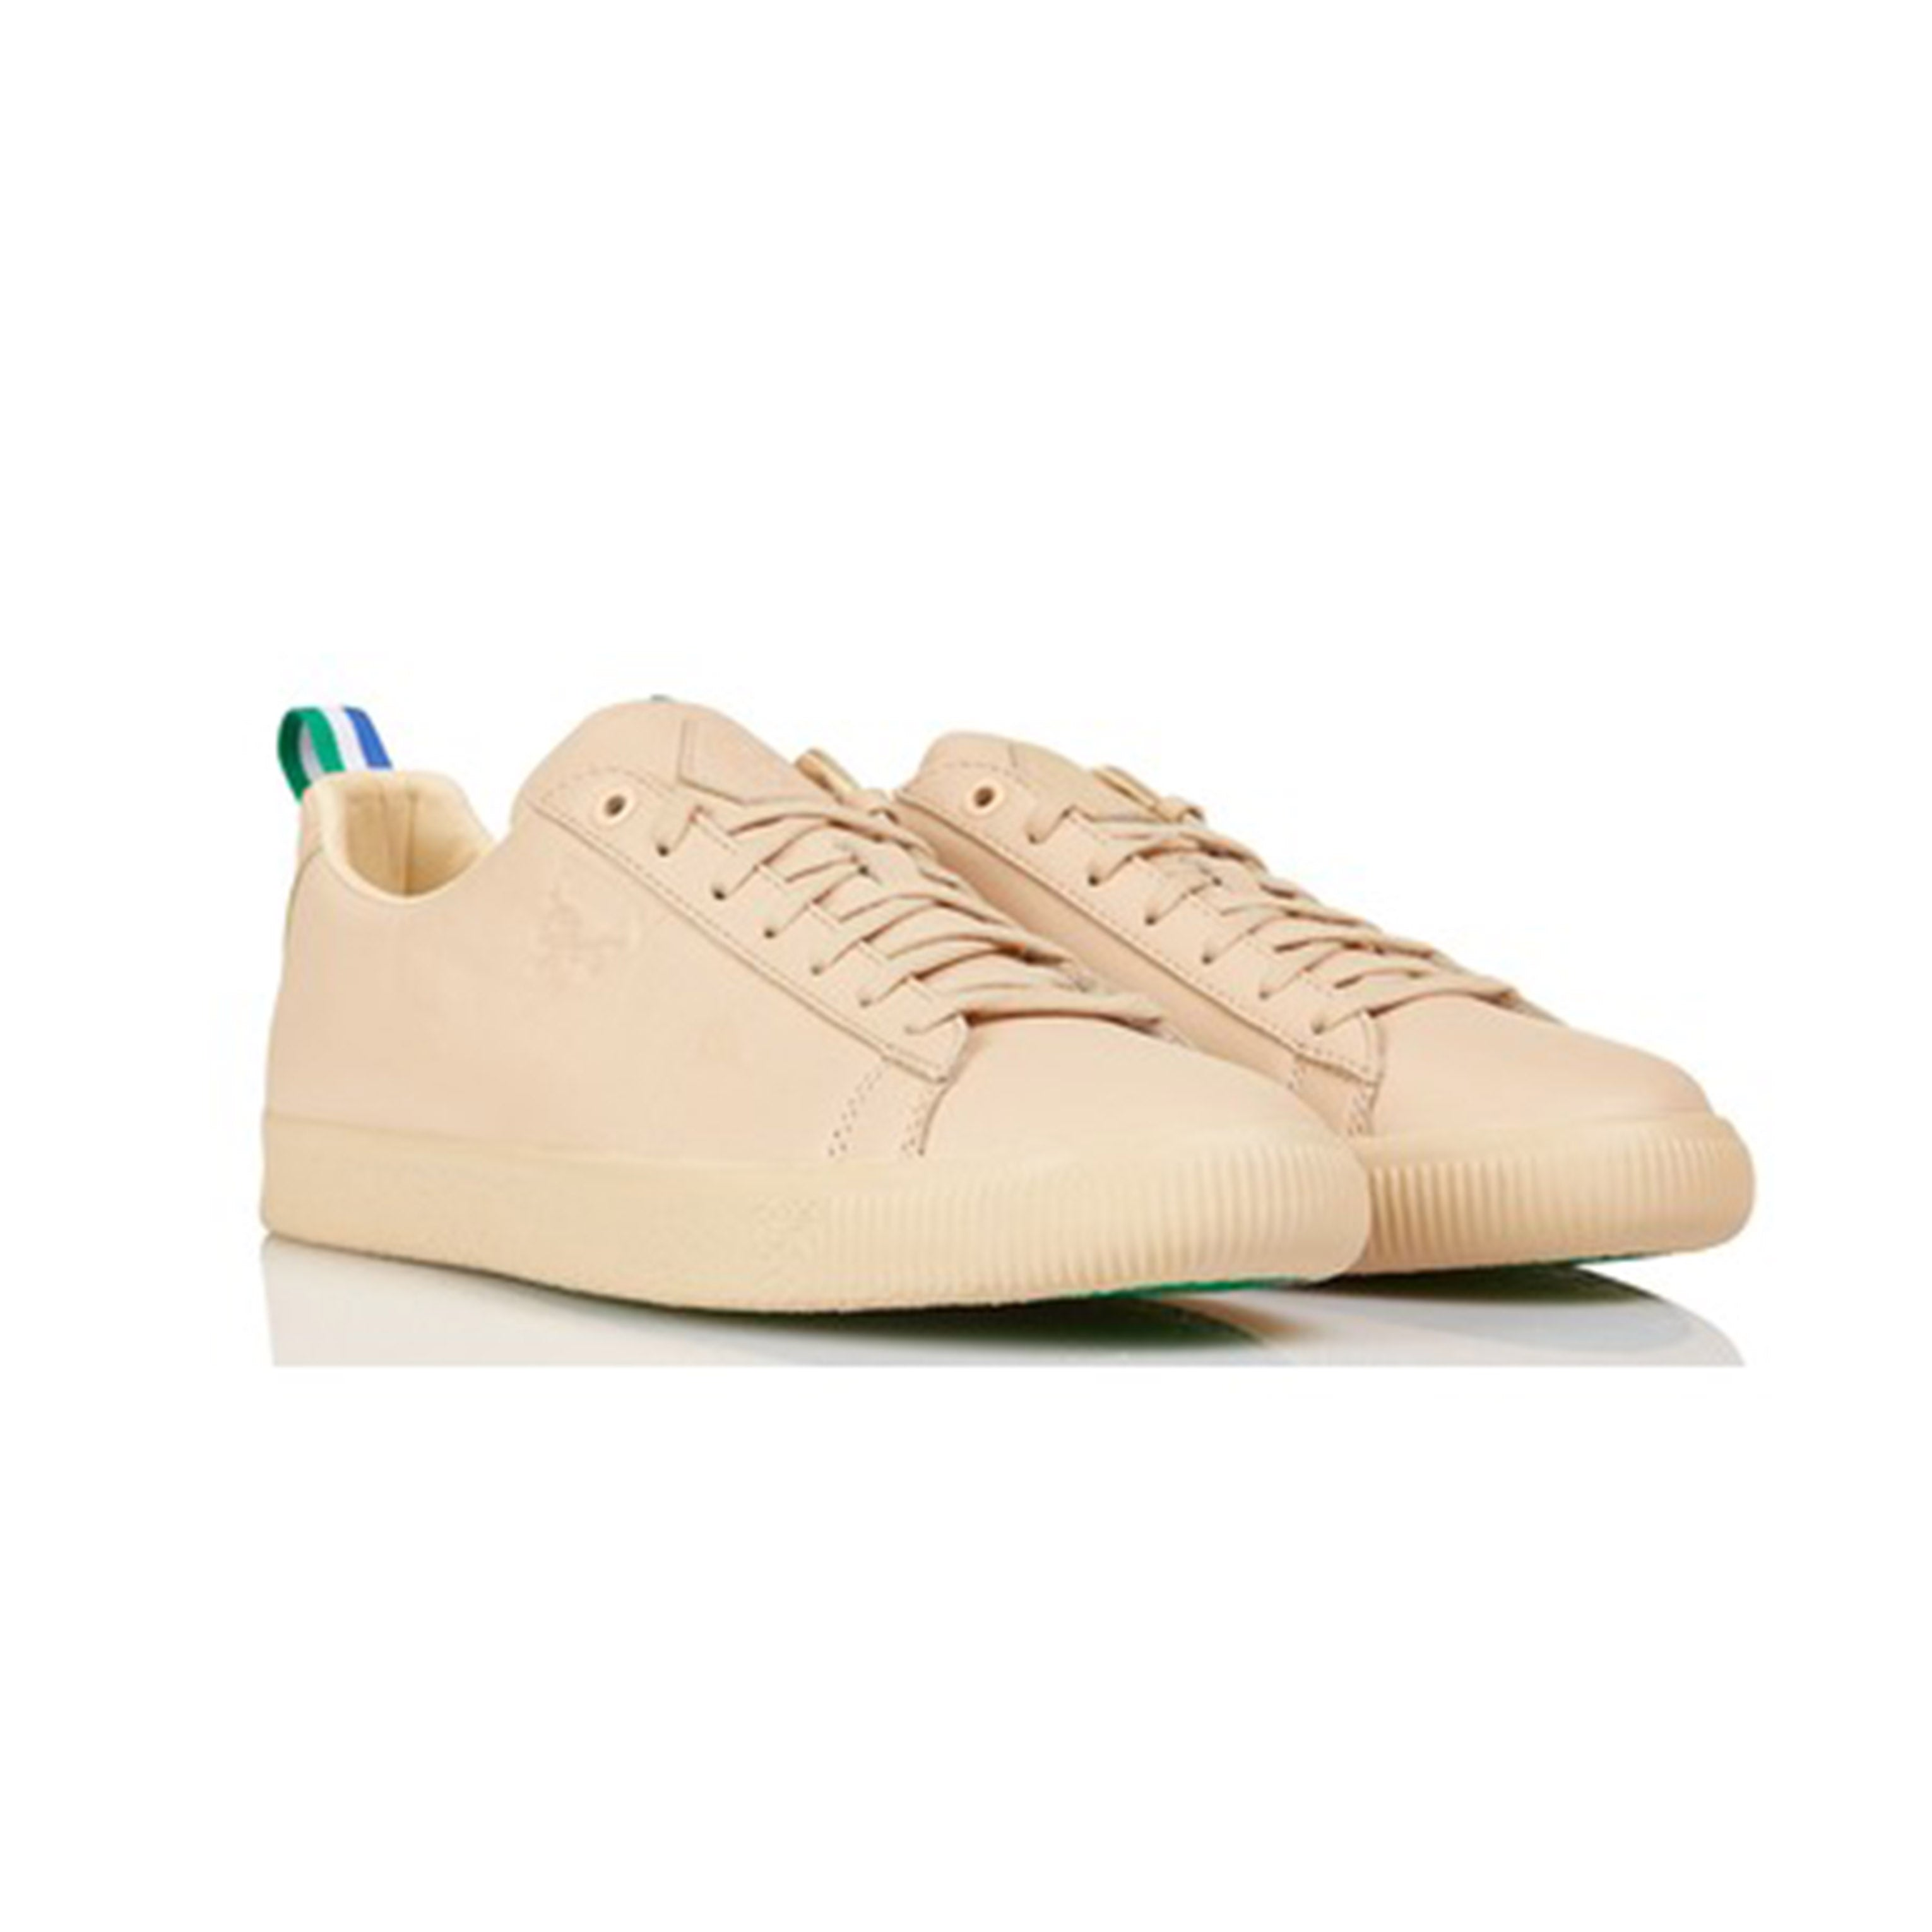 Big Sean x Puma Clyde Natural Vachetta Tan